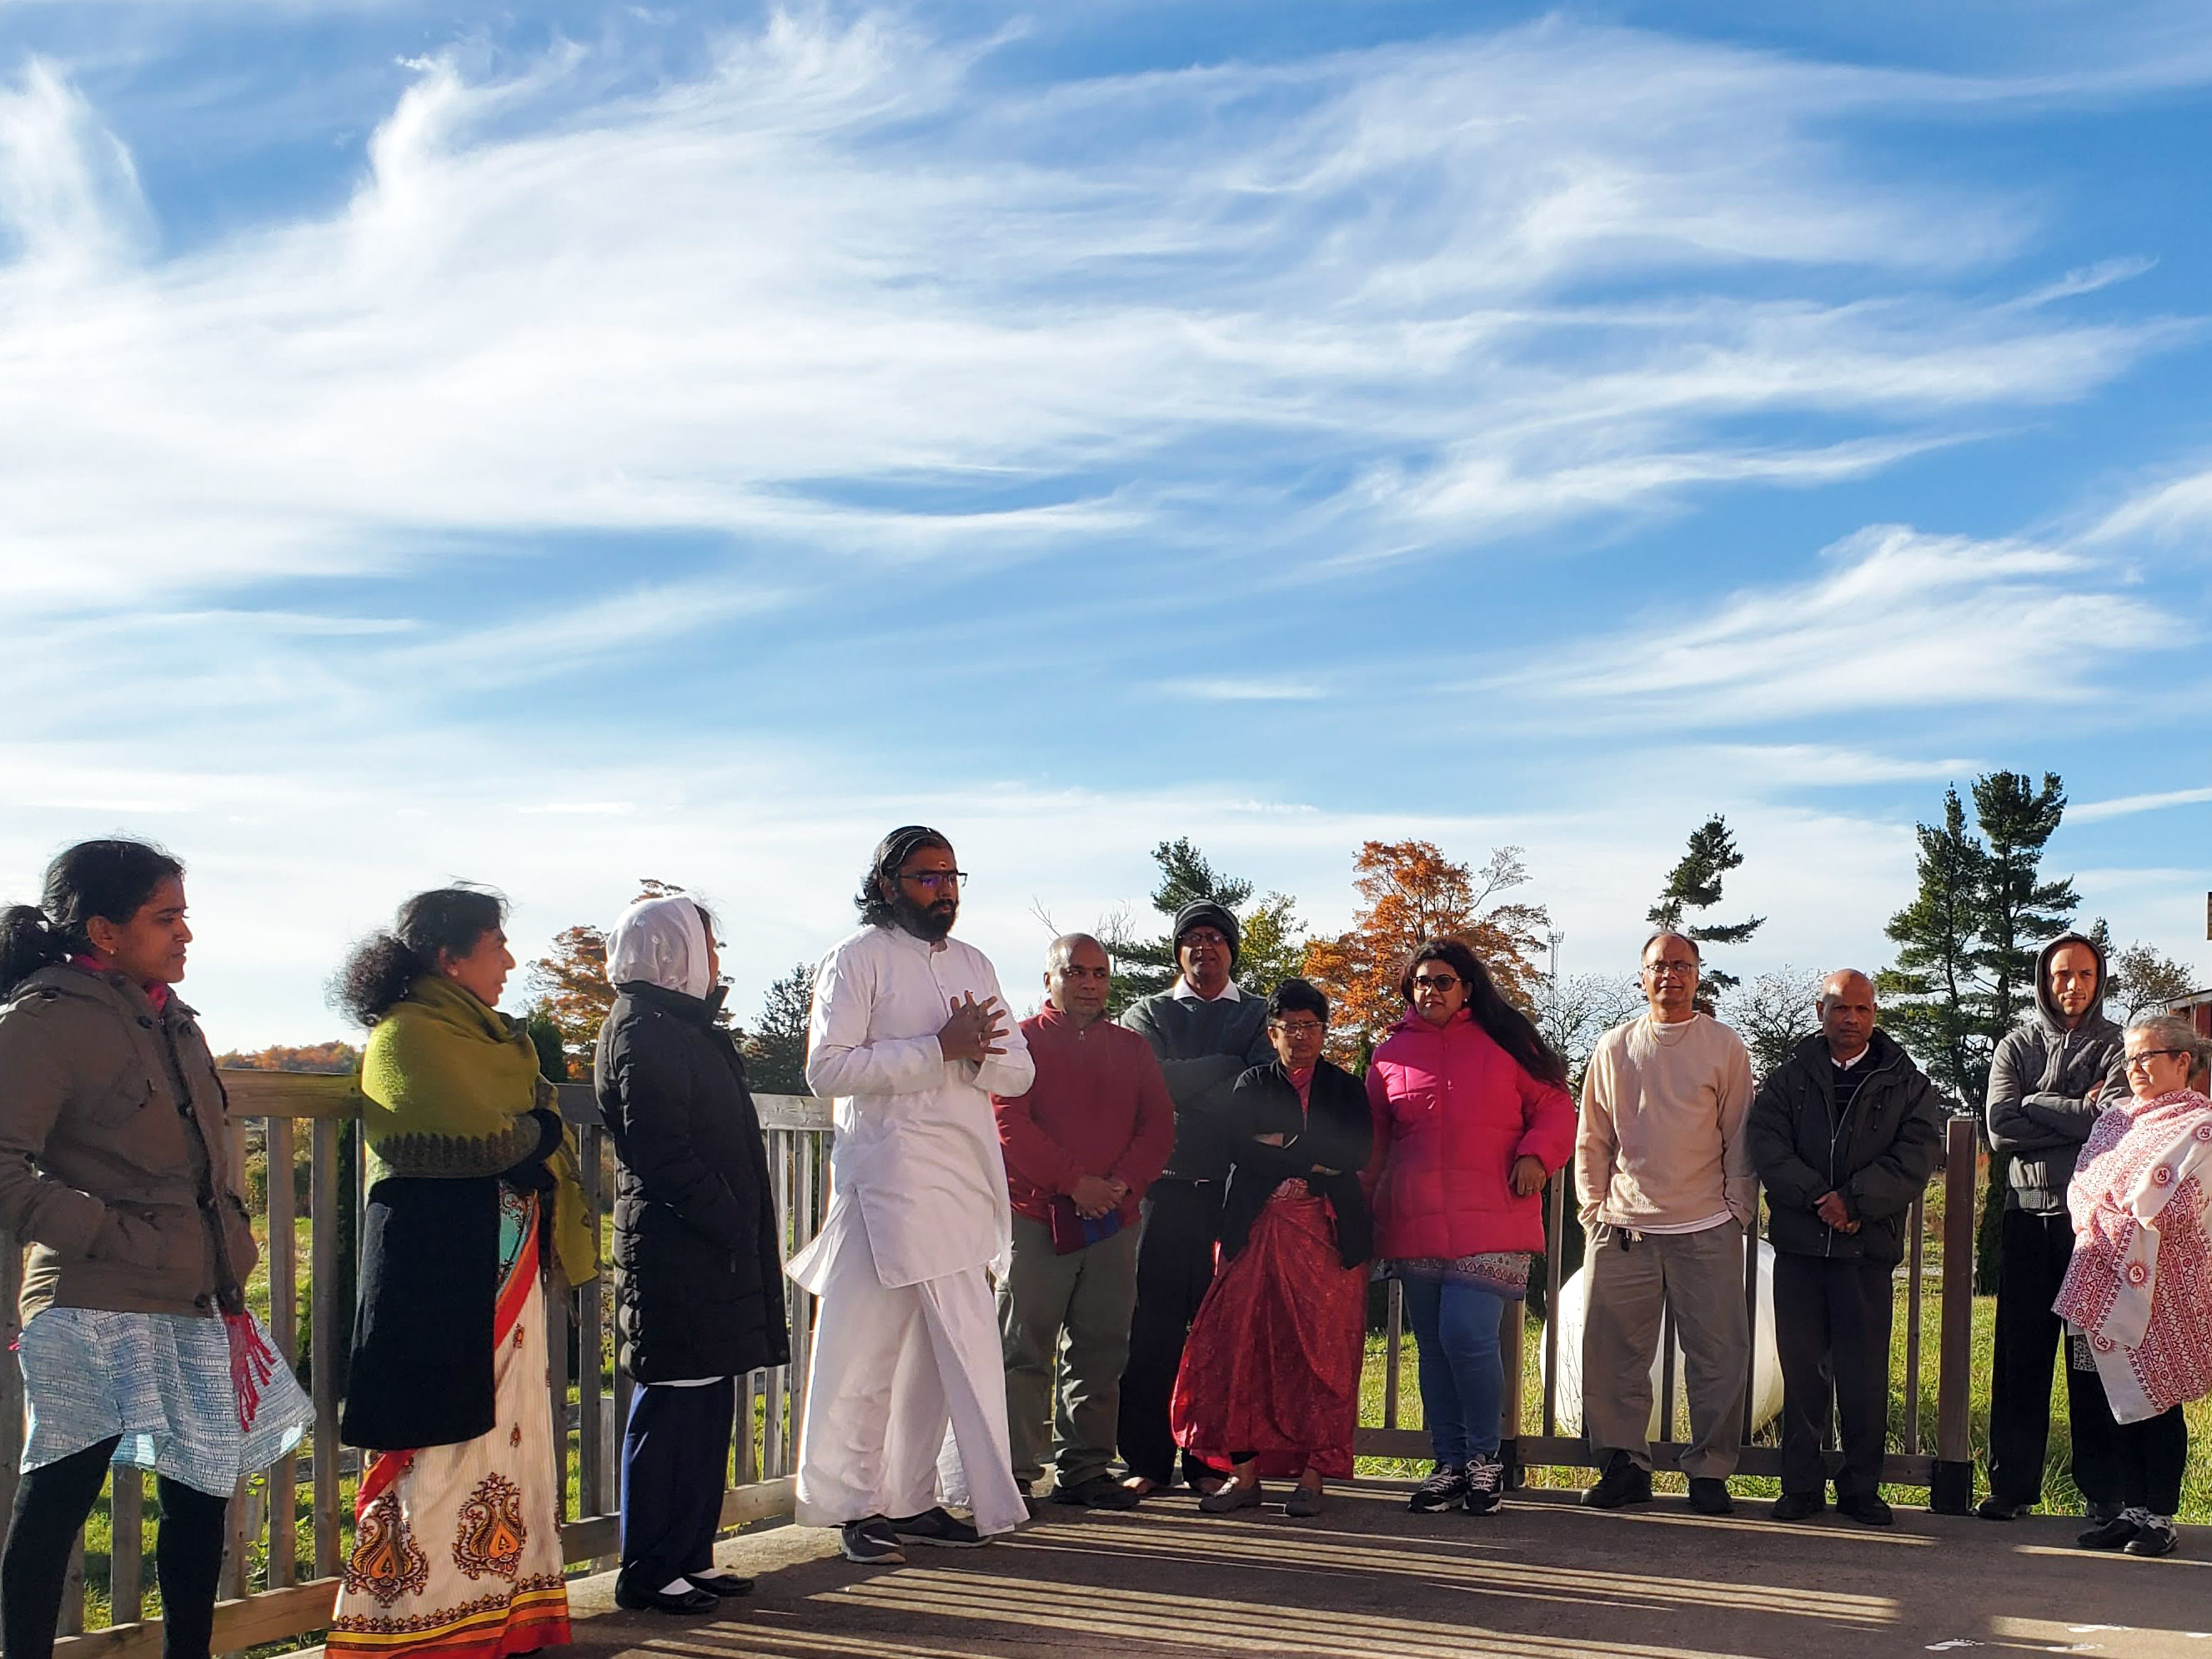 Br. Ramanand speaking to a group outside